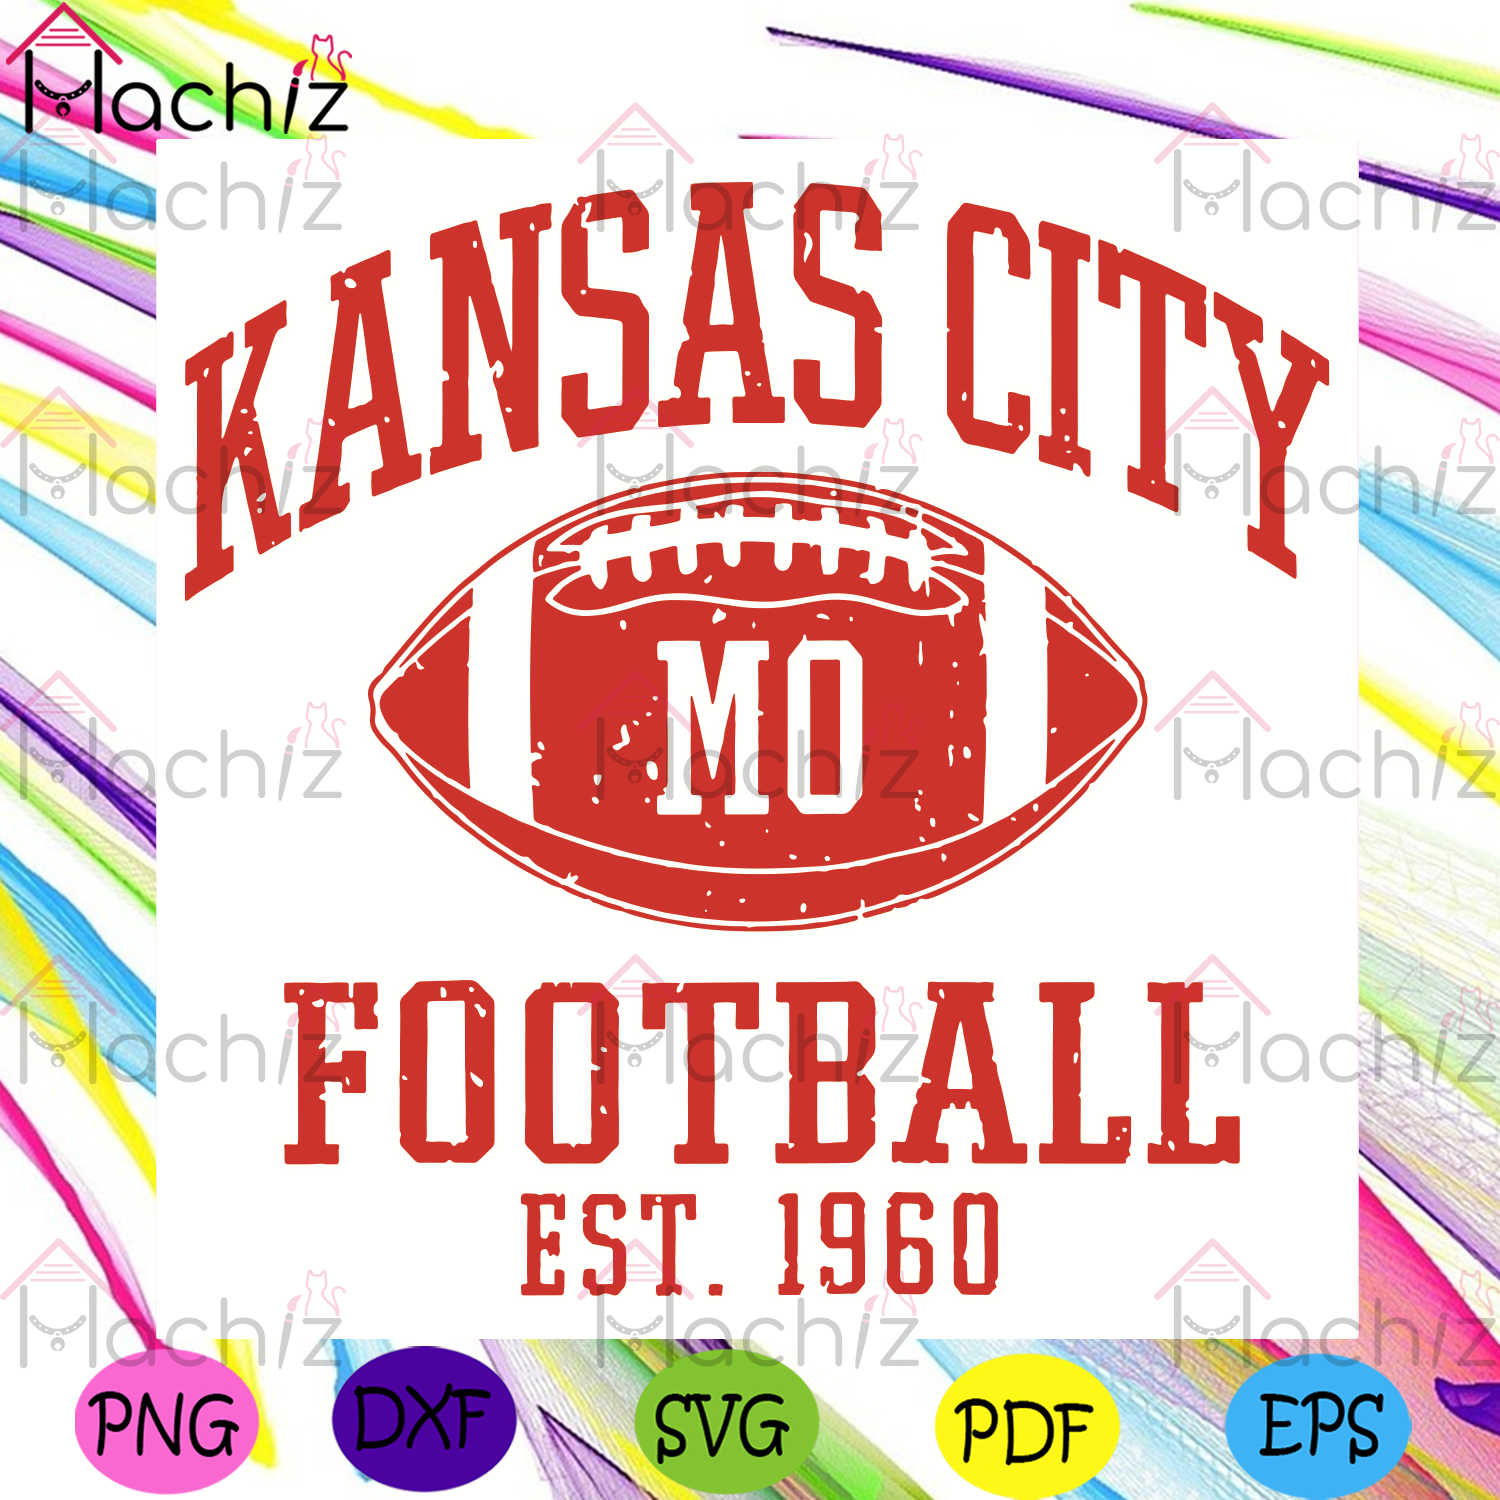 Kansas City Mo Football Est 1960 Svg, Sport Svg, Kansas City Chiefs Svg, Football Svg, Kc Svg, Super Bowl Svg, Patrick Mahomes Svg, Kansas City Fans Svg, Kansas City Lovers Svg, Football Fans Svg, Football Lovers Svg, Football Gifts Svg